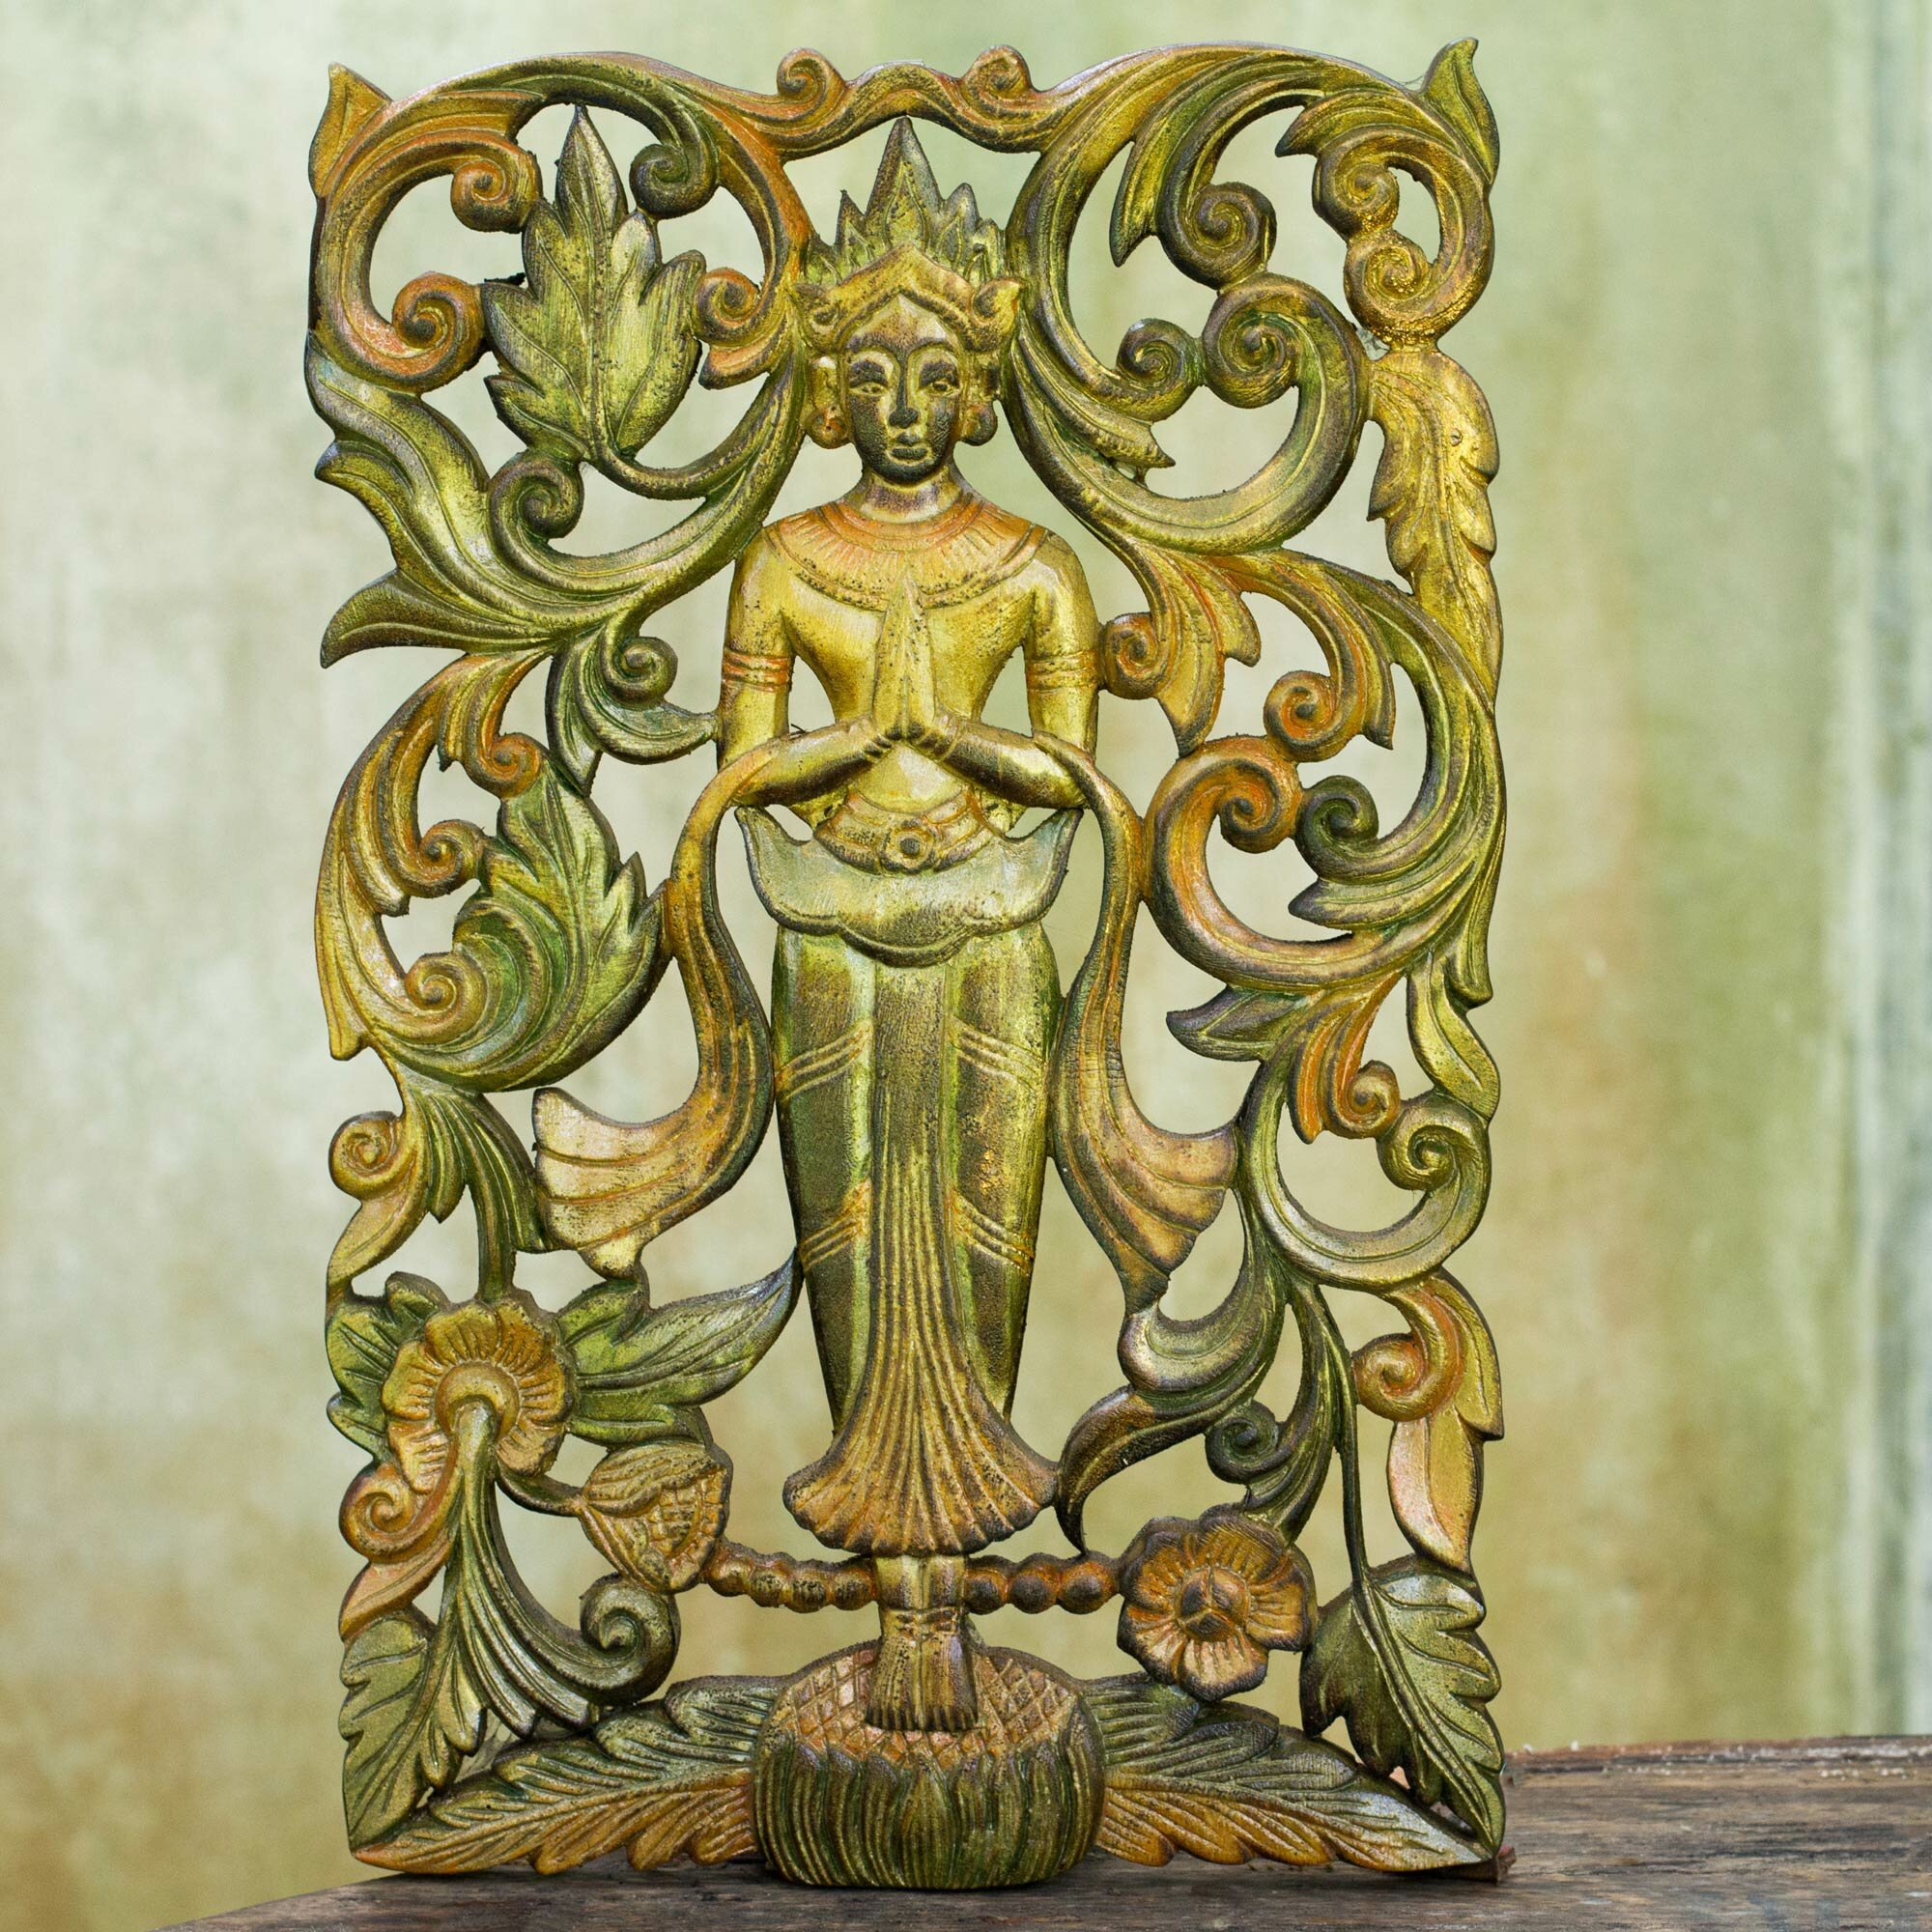 Novica Buddhist Angel Antiqued Teak Wood Panel Wall Décor | Wayfair